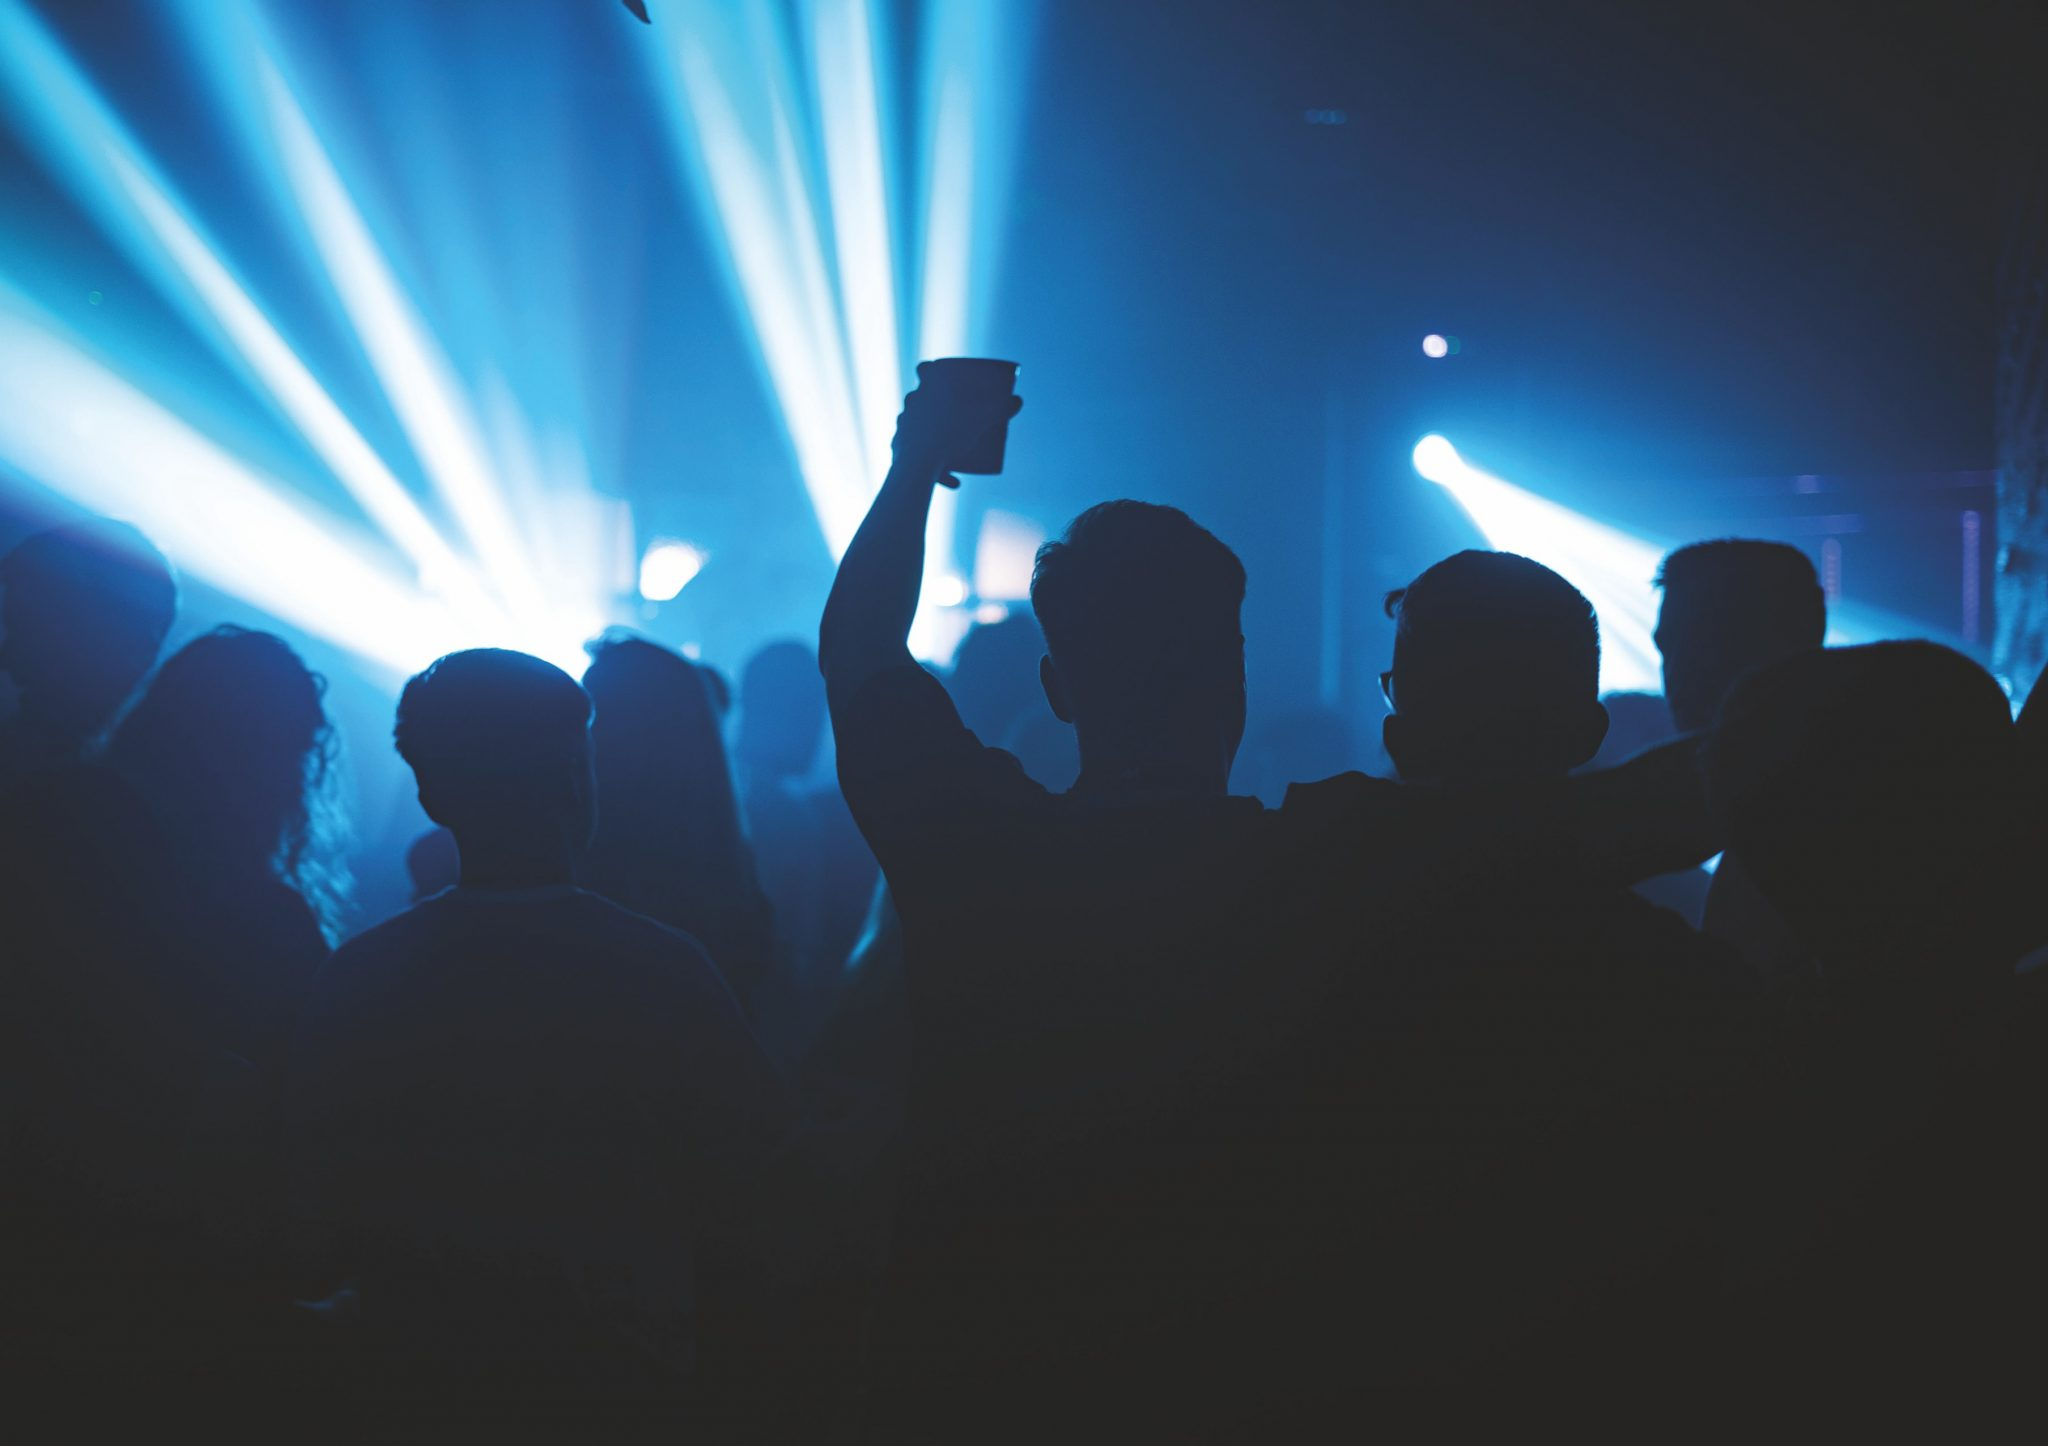 nightclubs-could-return-if-dancers-wear-face-masks-on-the-dancefloor,-report-says